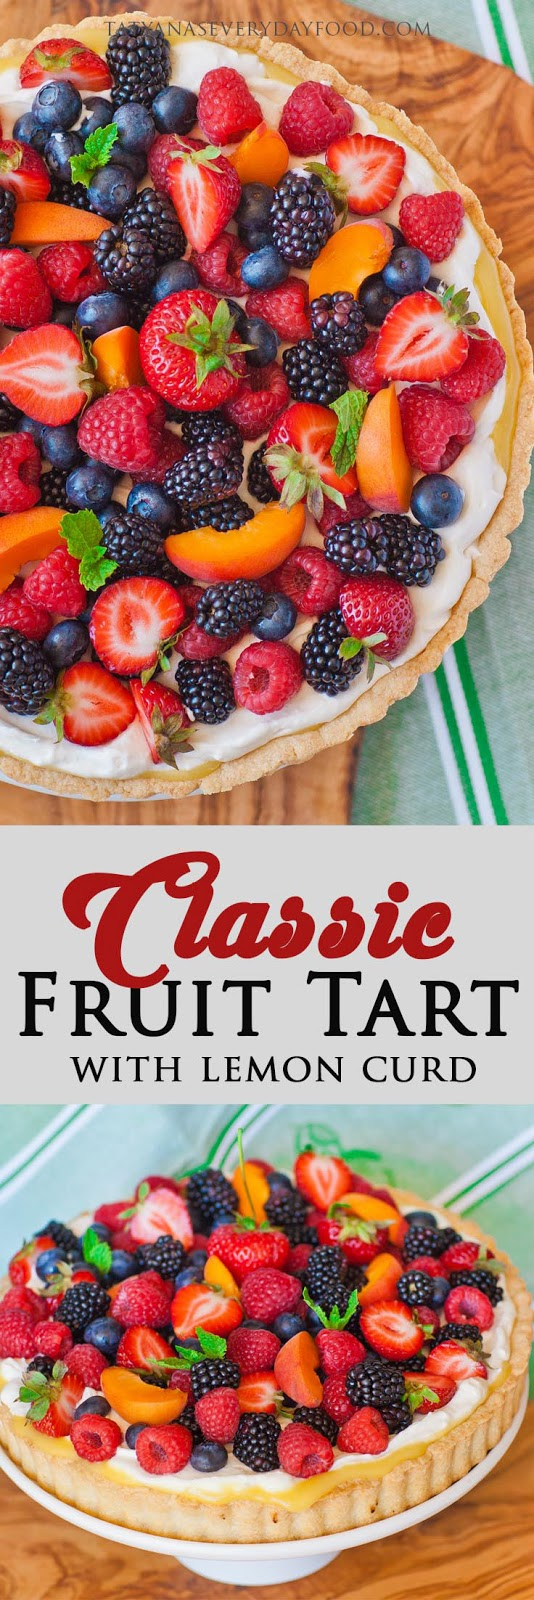 Classic Fruit Tart with Lemon Curd